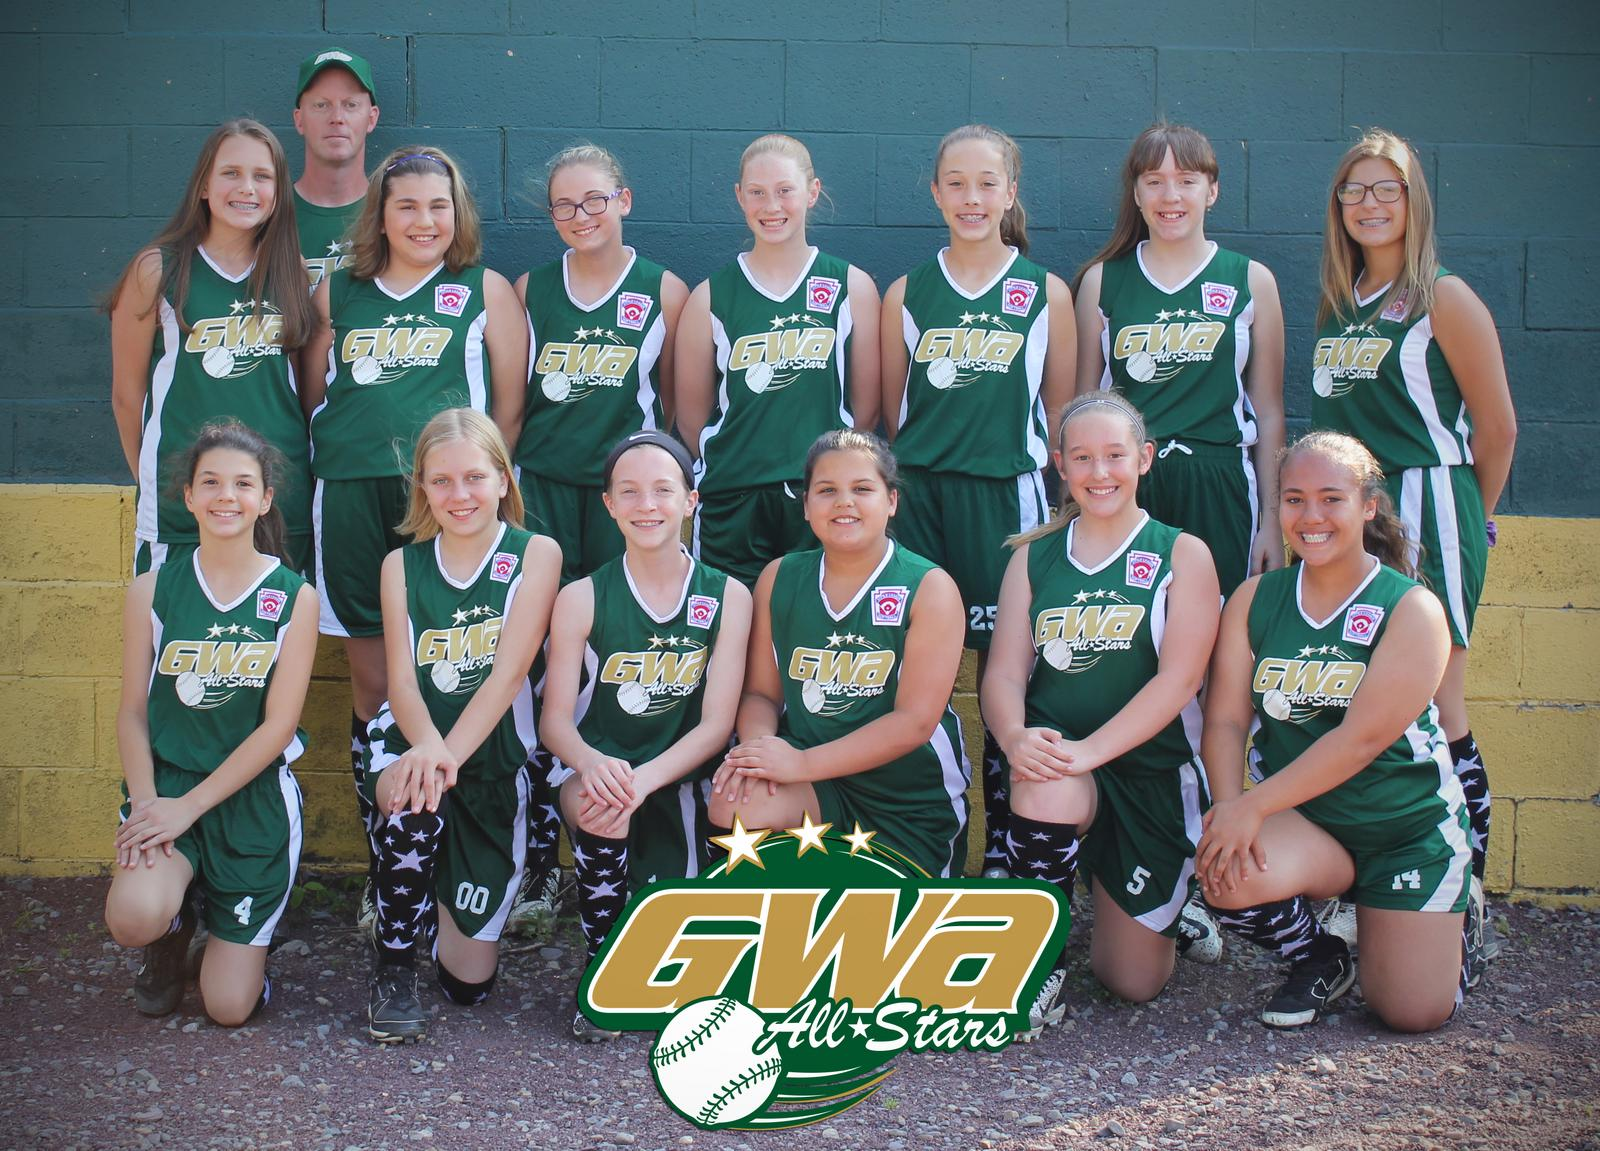 2017 GWA 11-12 Softball All-Stars